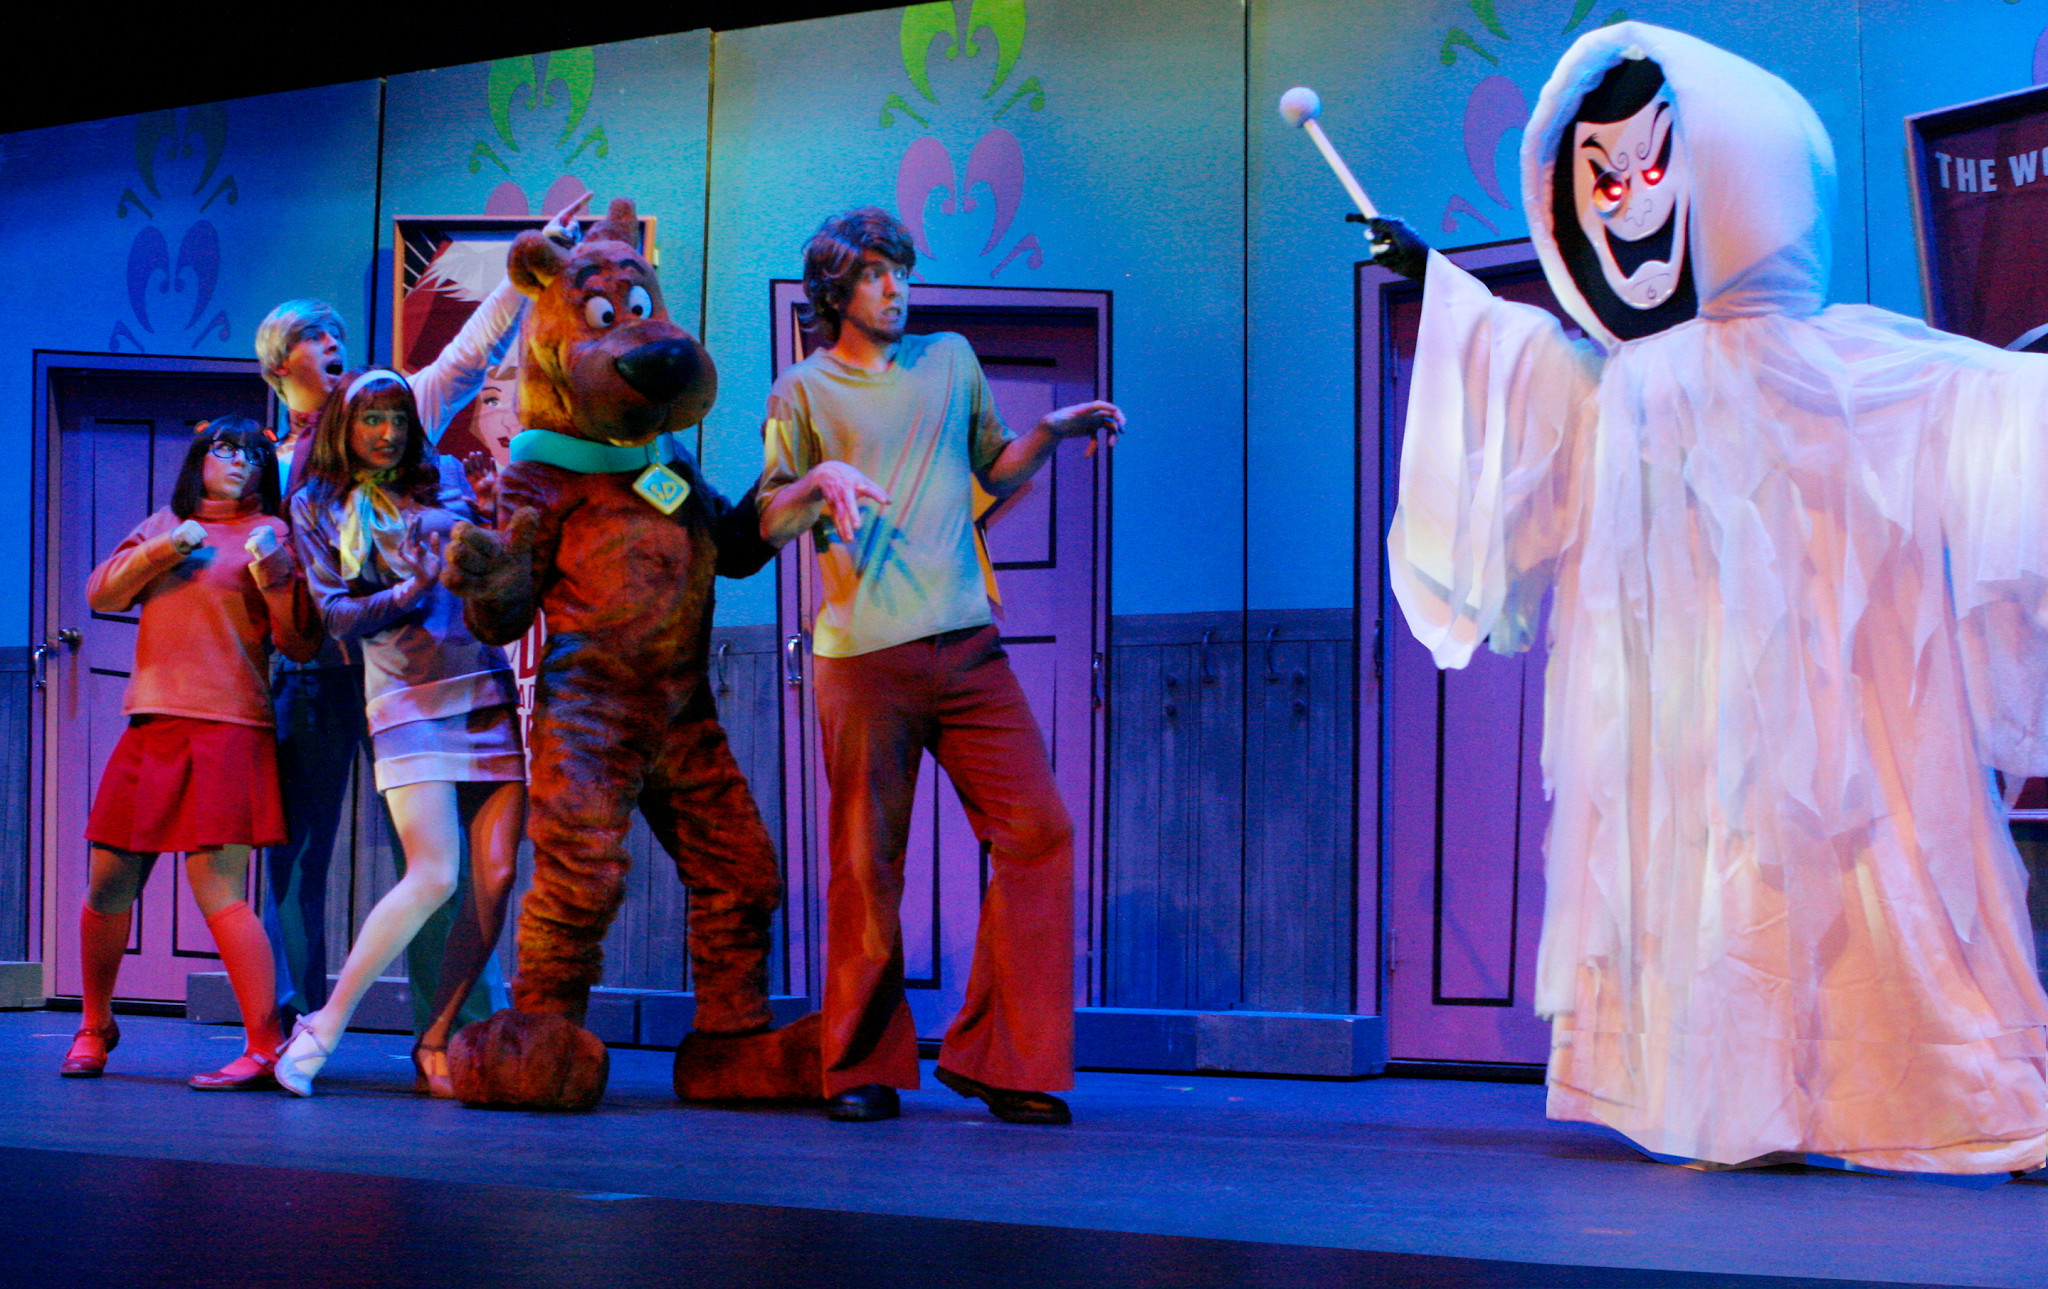 "Scooby-Doo and the Mystery Inc. Gang encounter the ghost that's haunting a local theater in ""Scooby-Doo Live! Musical Mysteries,"" presented by Warner Bros. Consumer Products and Life Like Touring."